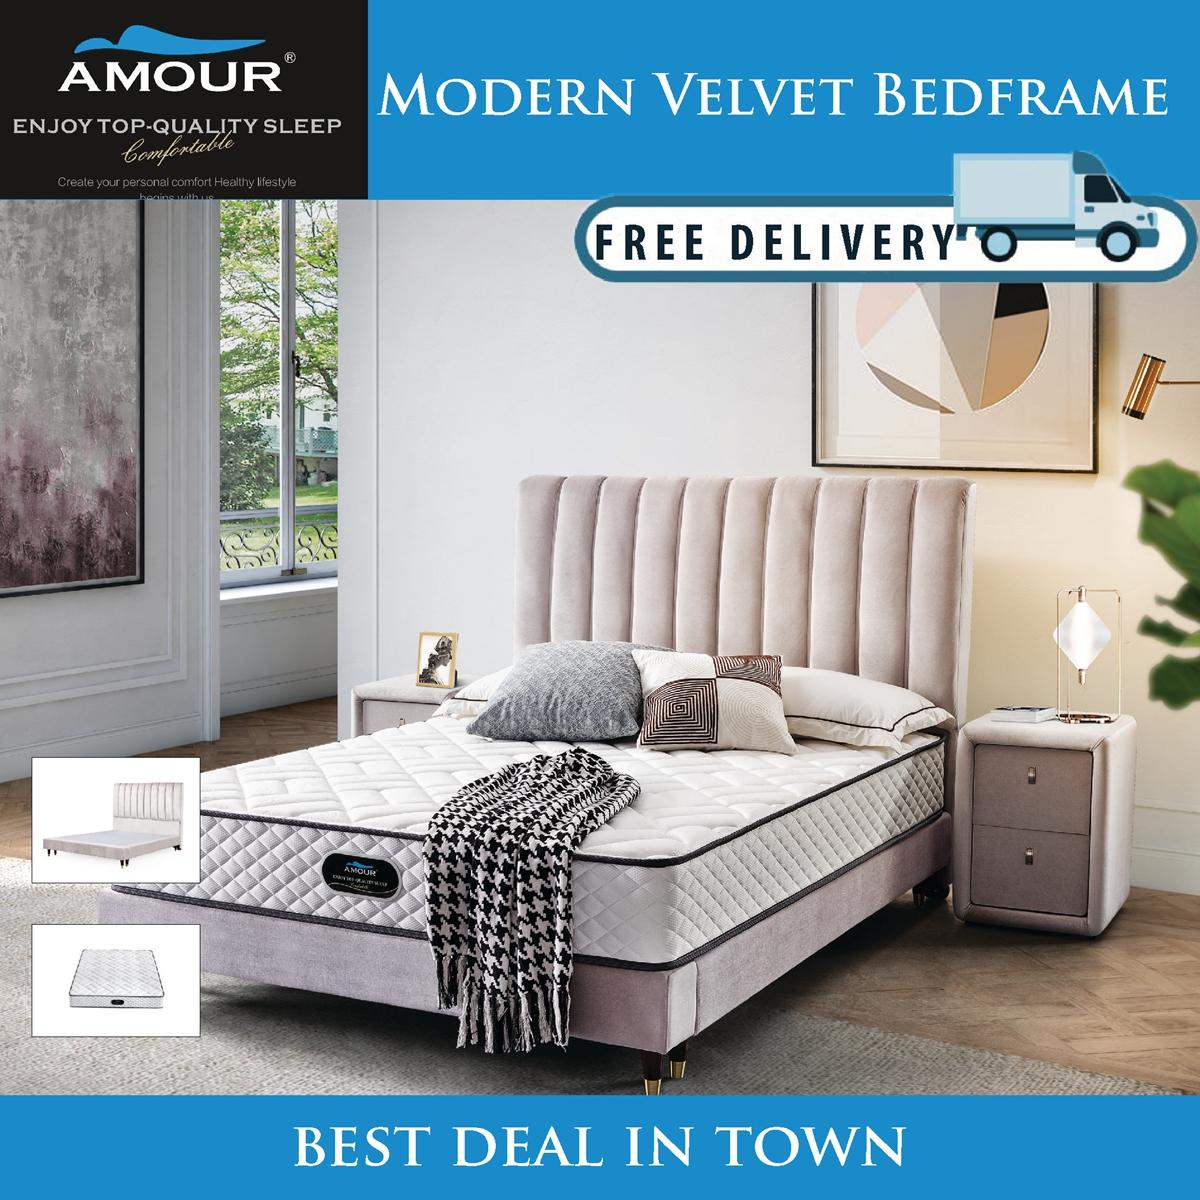 AMOUR BRAND QUEEN SIZE / KING SIZE PREMIUM MODERN VELVET BED FRAME/FREE DELIVERY/10 YEARS WARRANTY